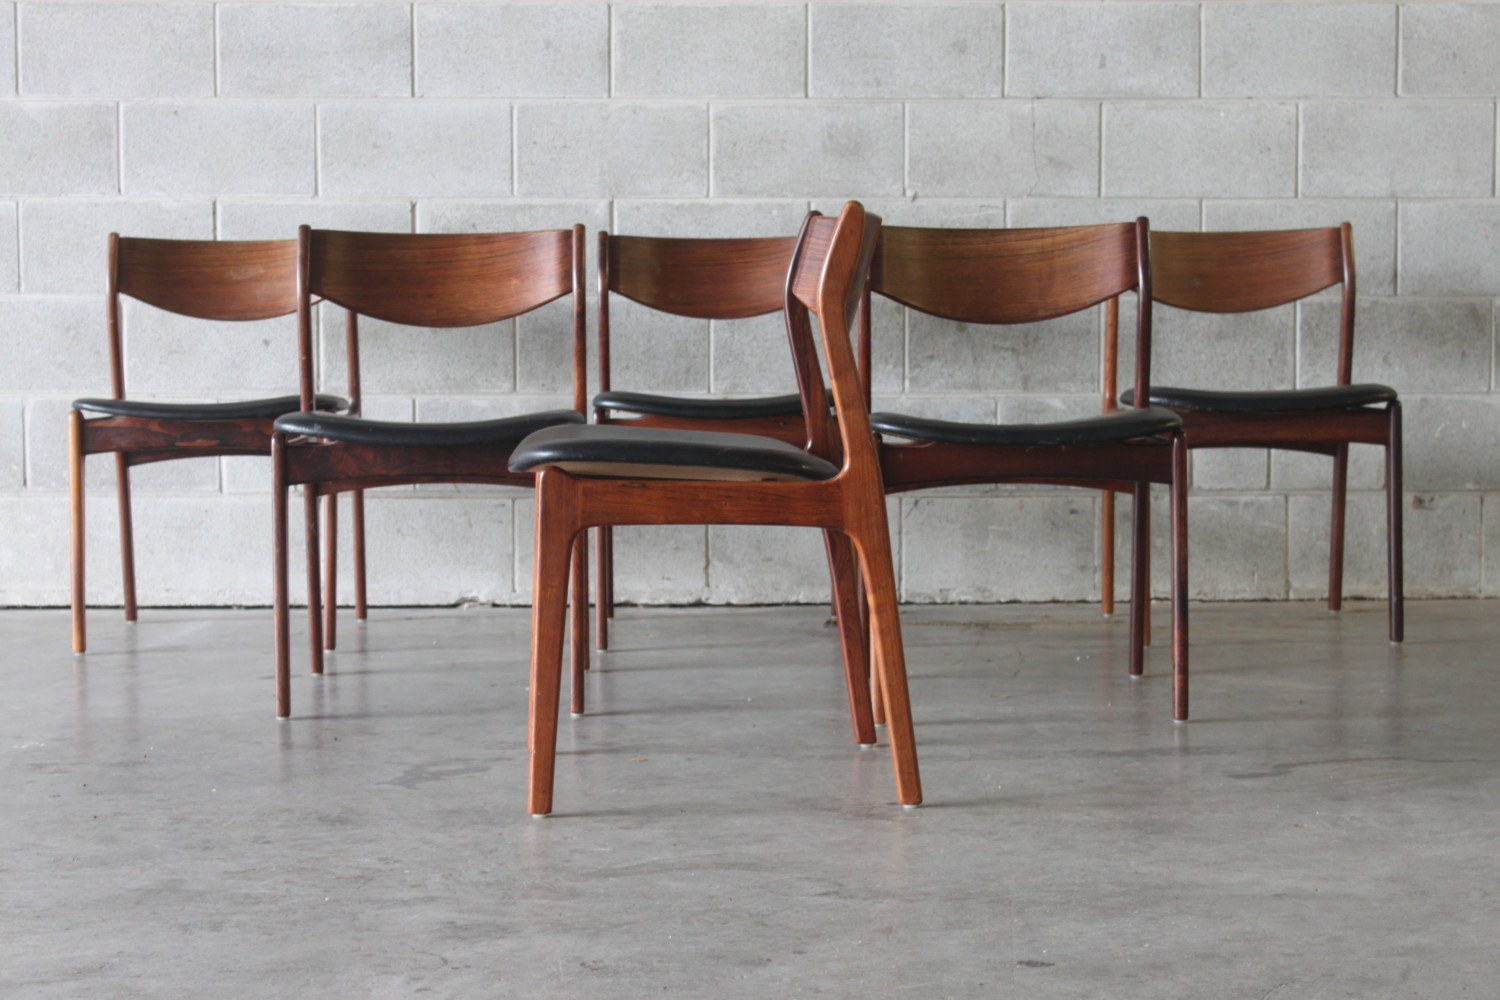 Rosewood Dining Chairs by P.E Jorgensen